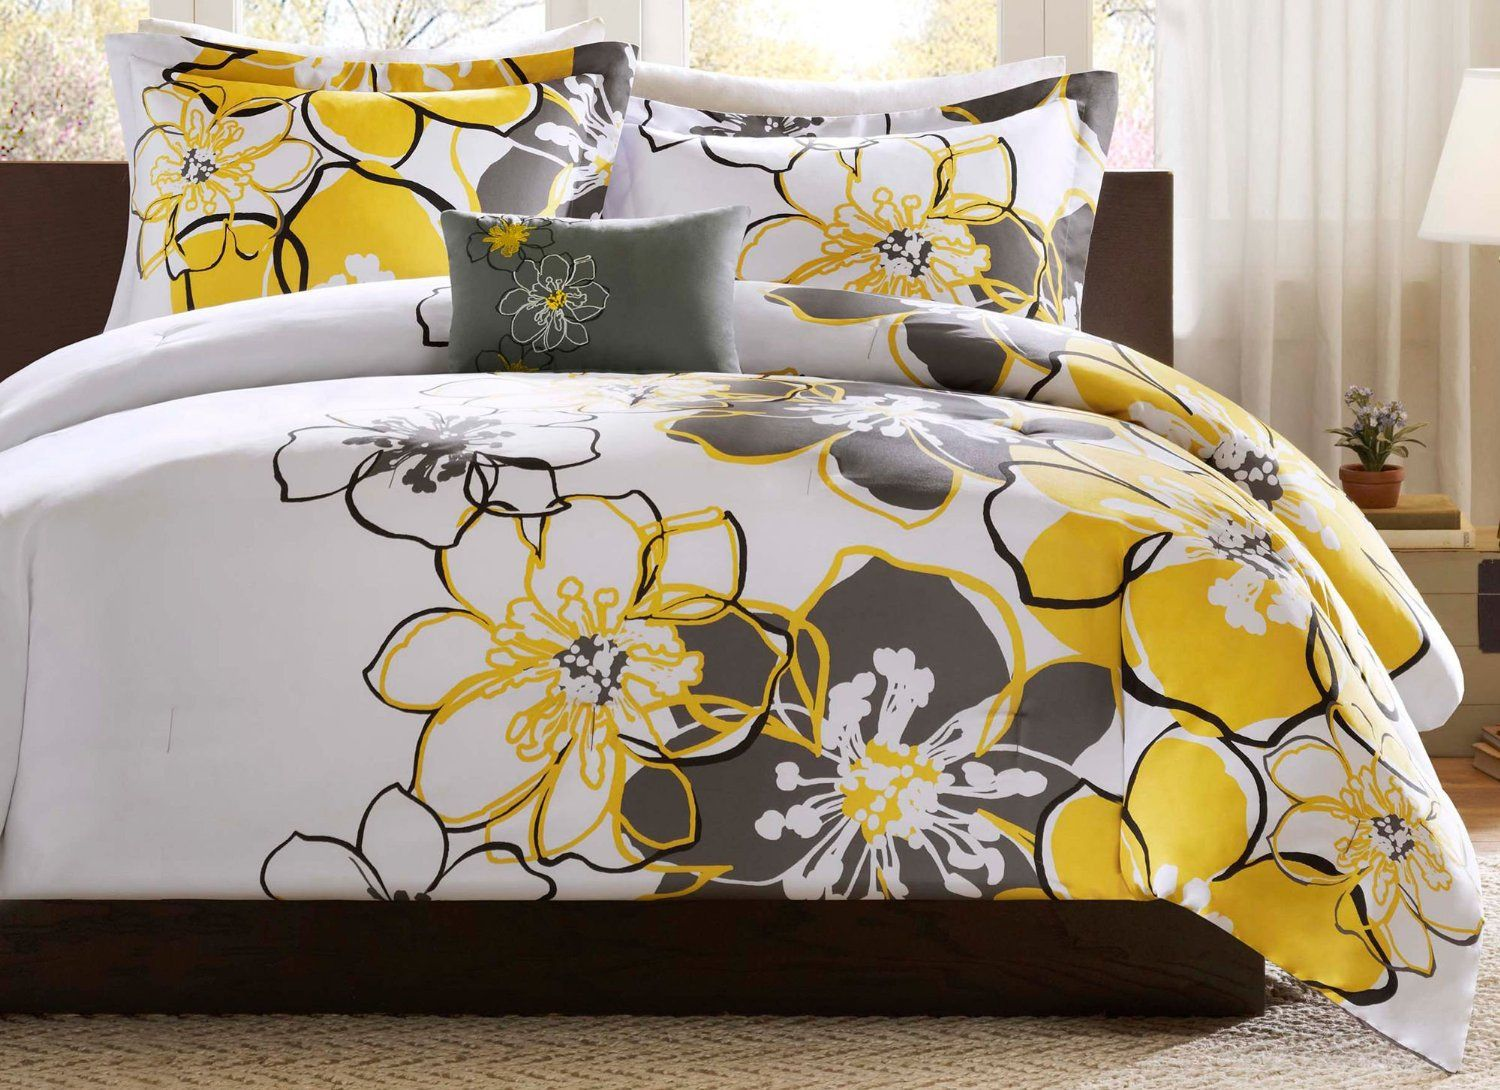 Mizone bedding in bedroom pinterest floral bedding